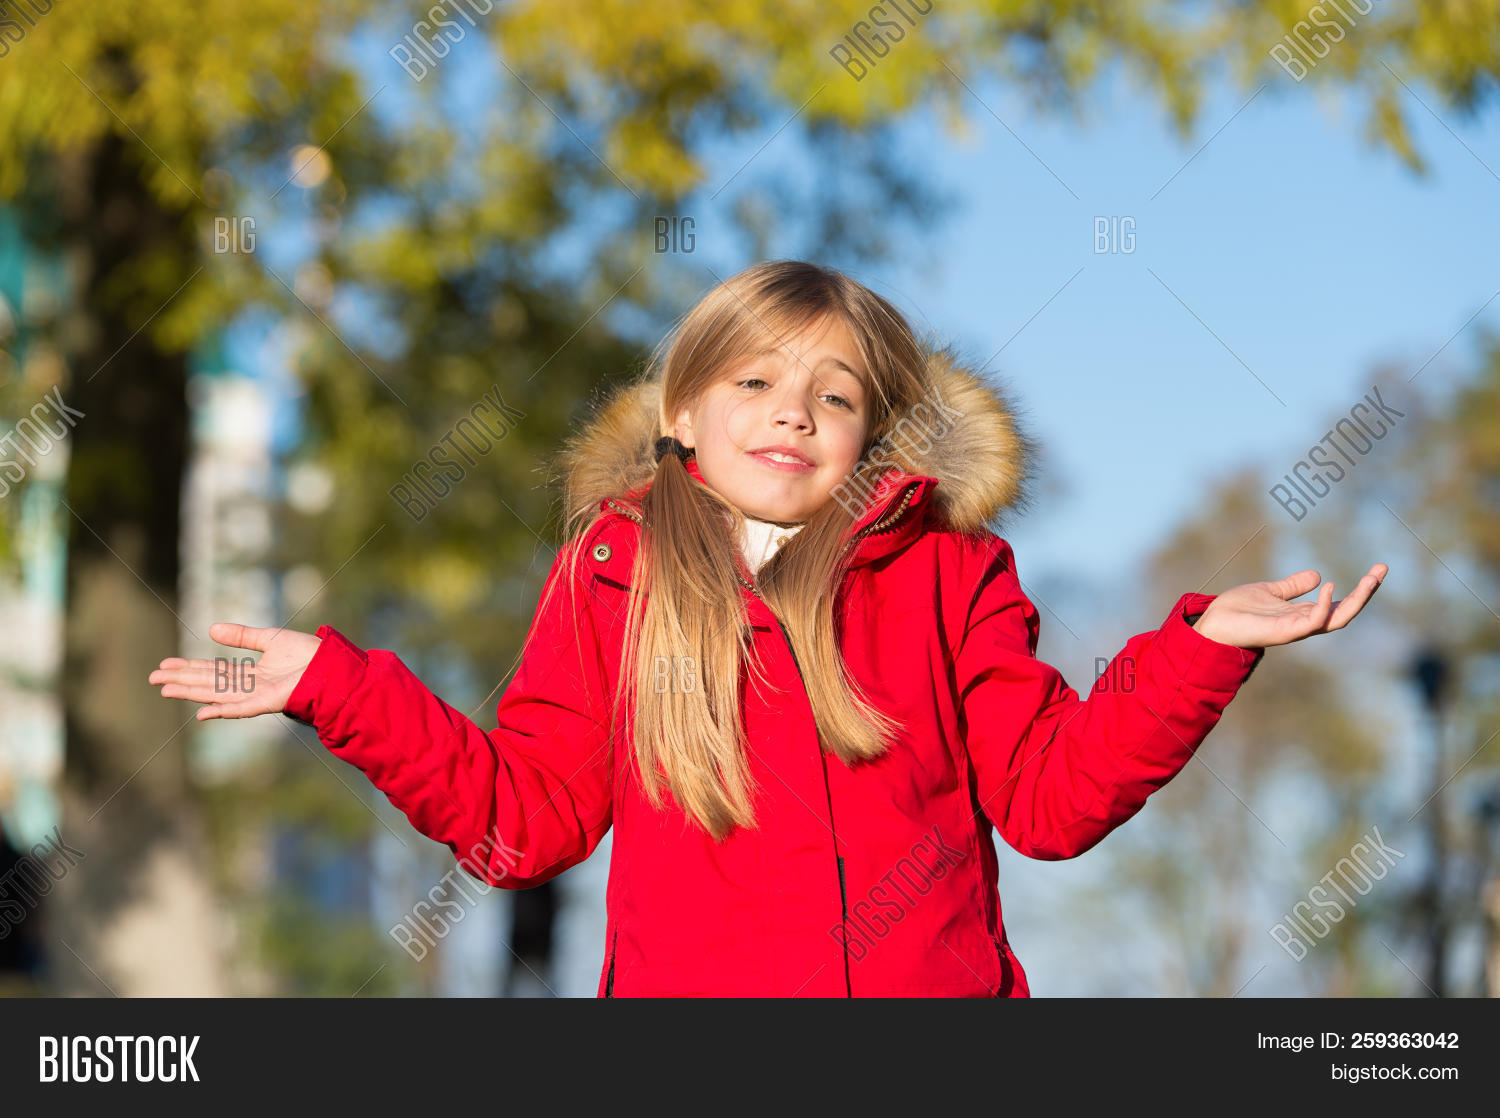 autumn,baby,carefree,cheerful,child,childhood,correct,do,emotions,fall,girl,happy,in,joy,joyful,kid,little,look,make,mistake,mistaken,season,small,smile,smiling,time